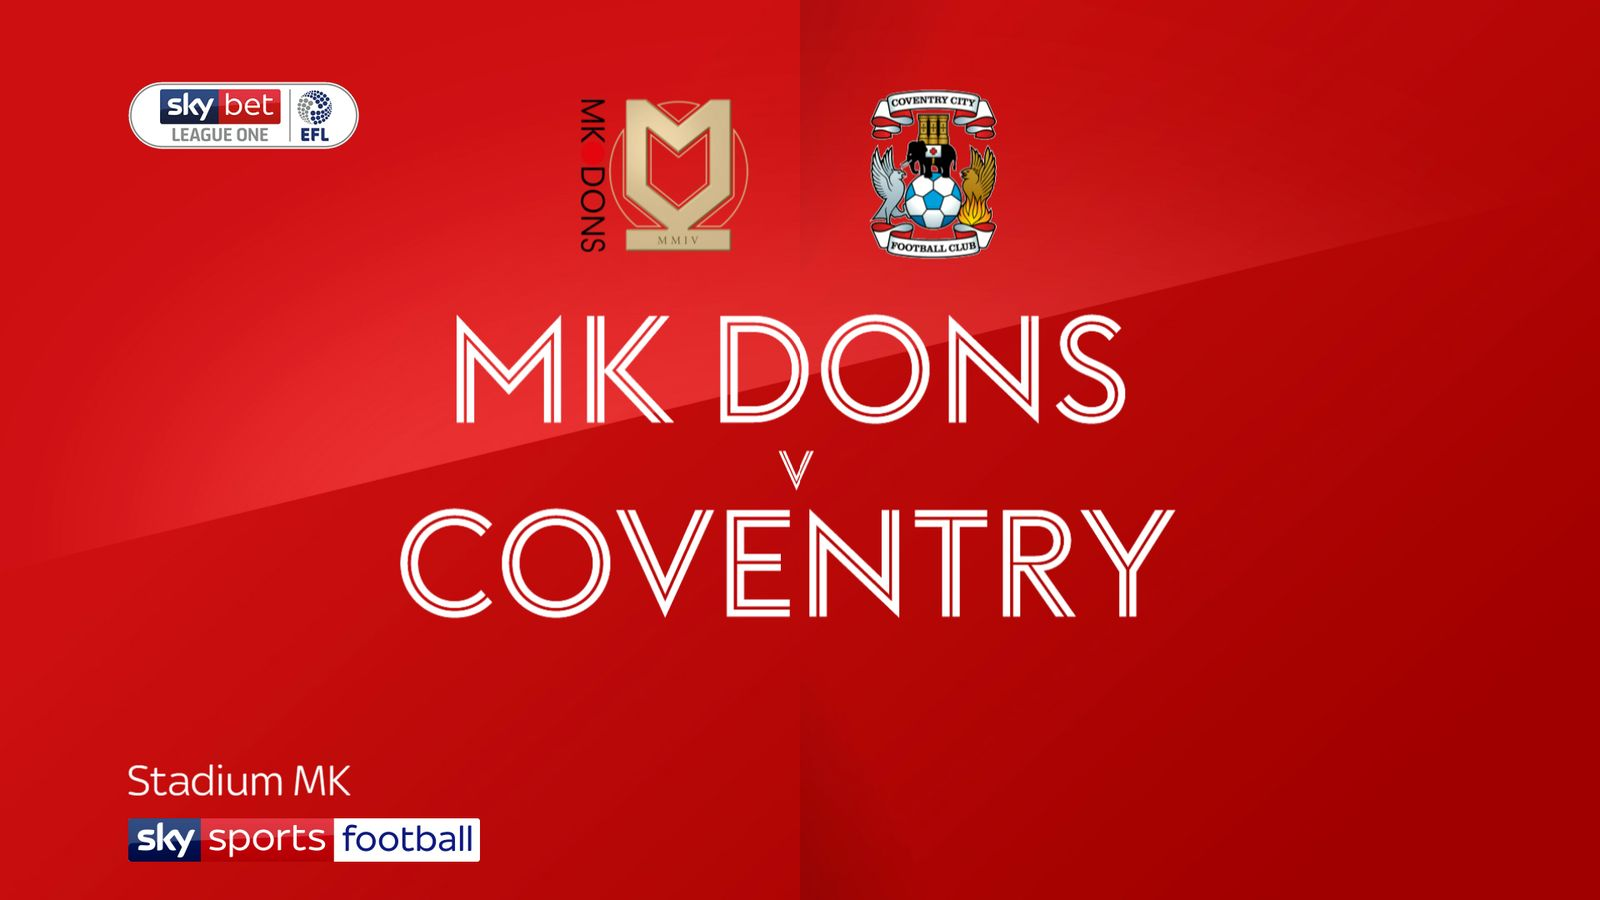 MK Dons 0-0 Coventry: Lee Nicholls saves penalty to earn point for MK